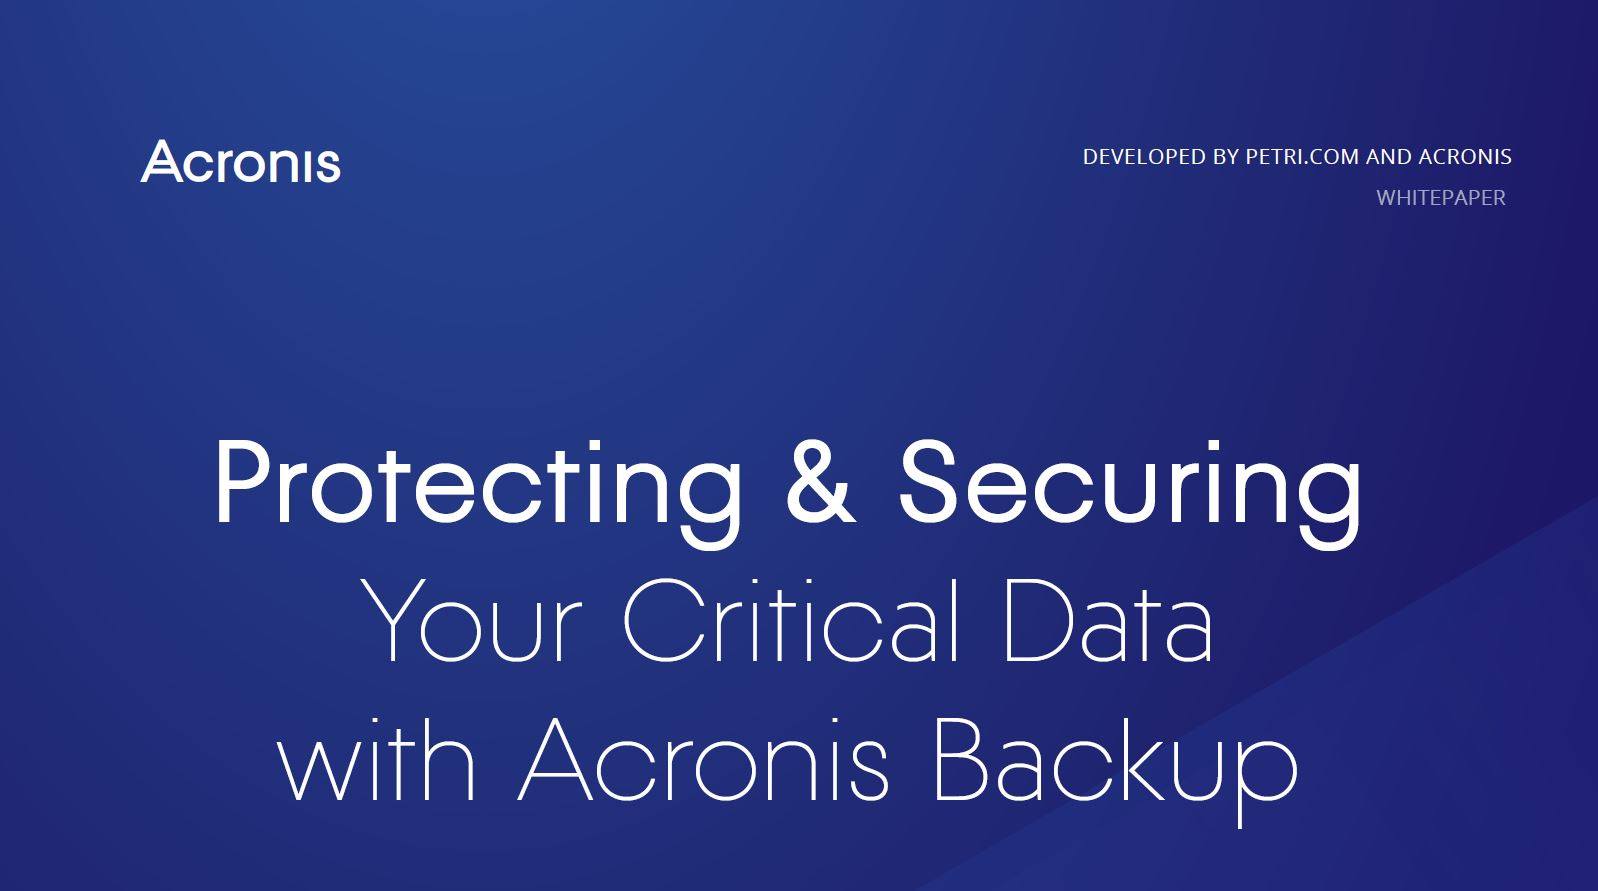 Protecting & Securing Your Critical Data with Acronis Backup